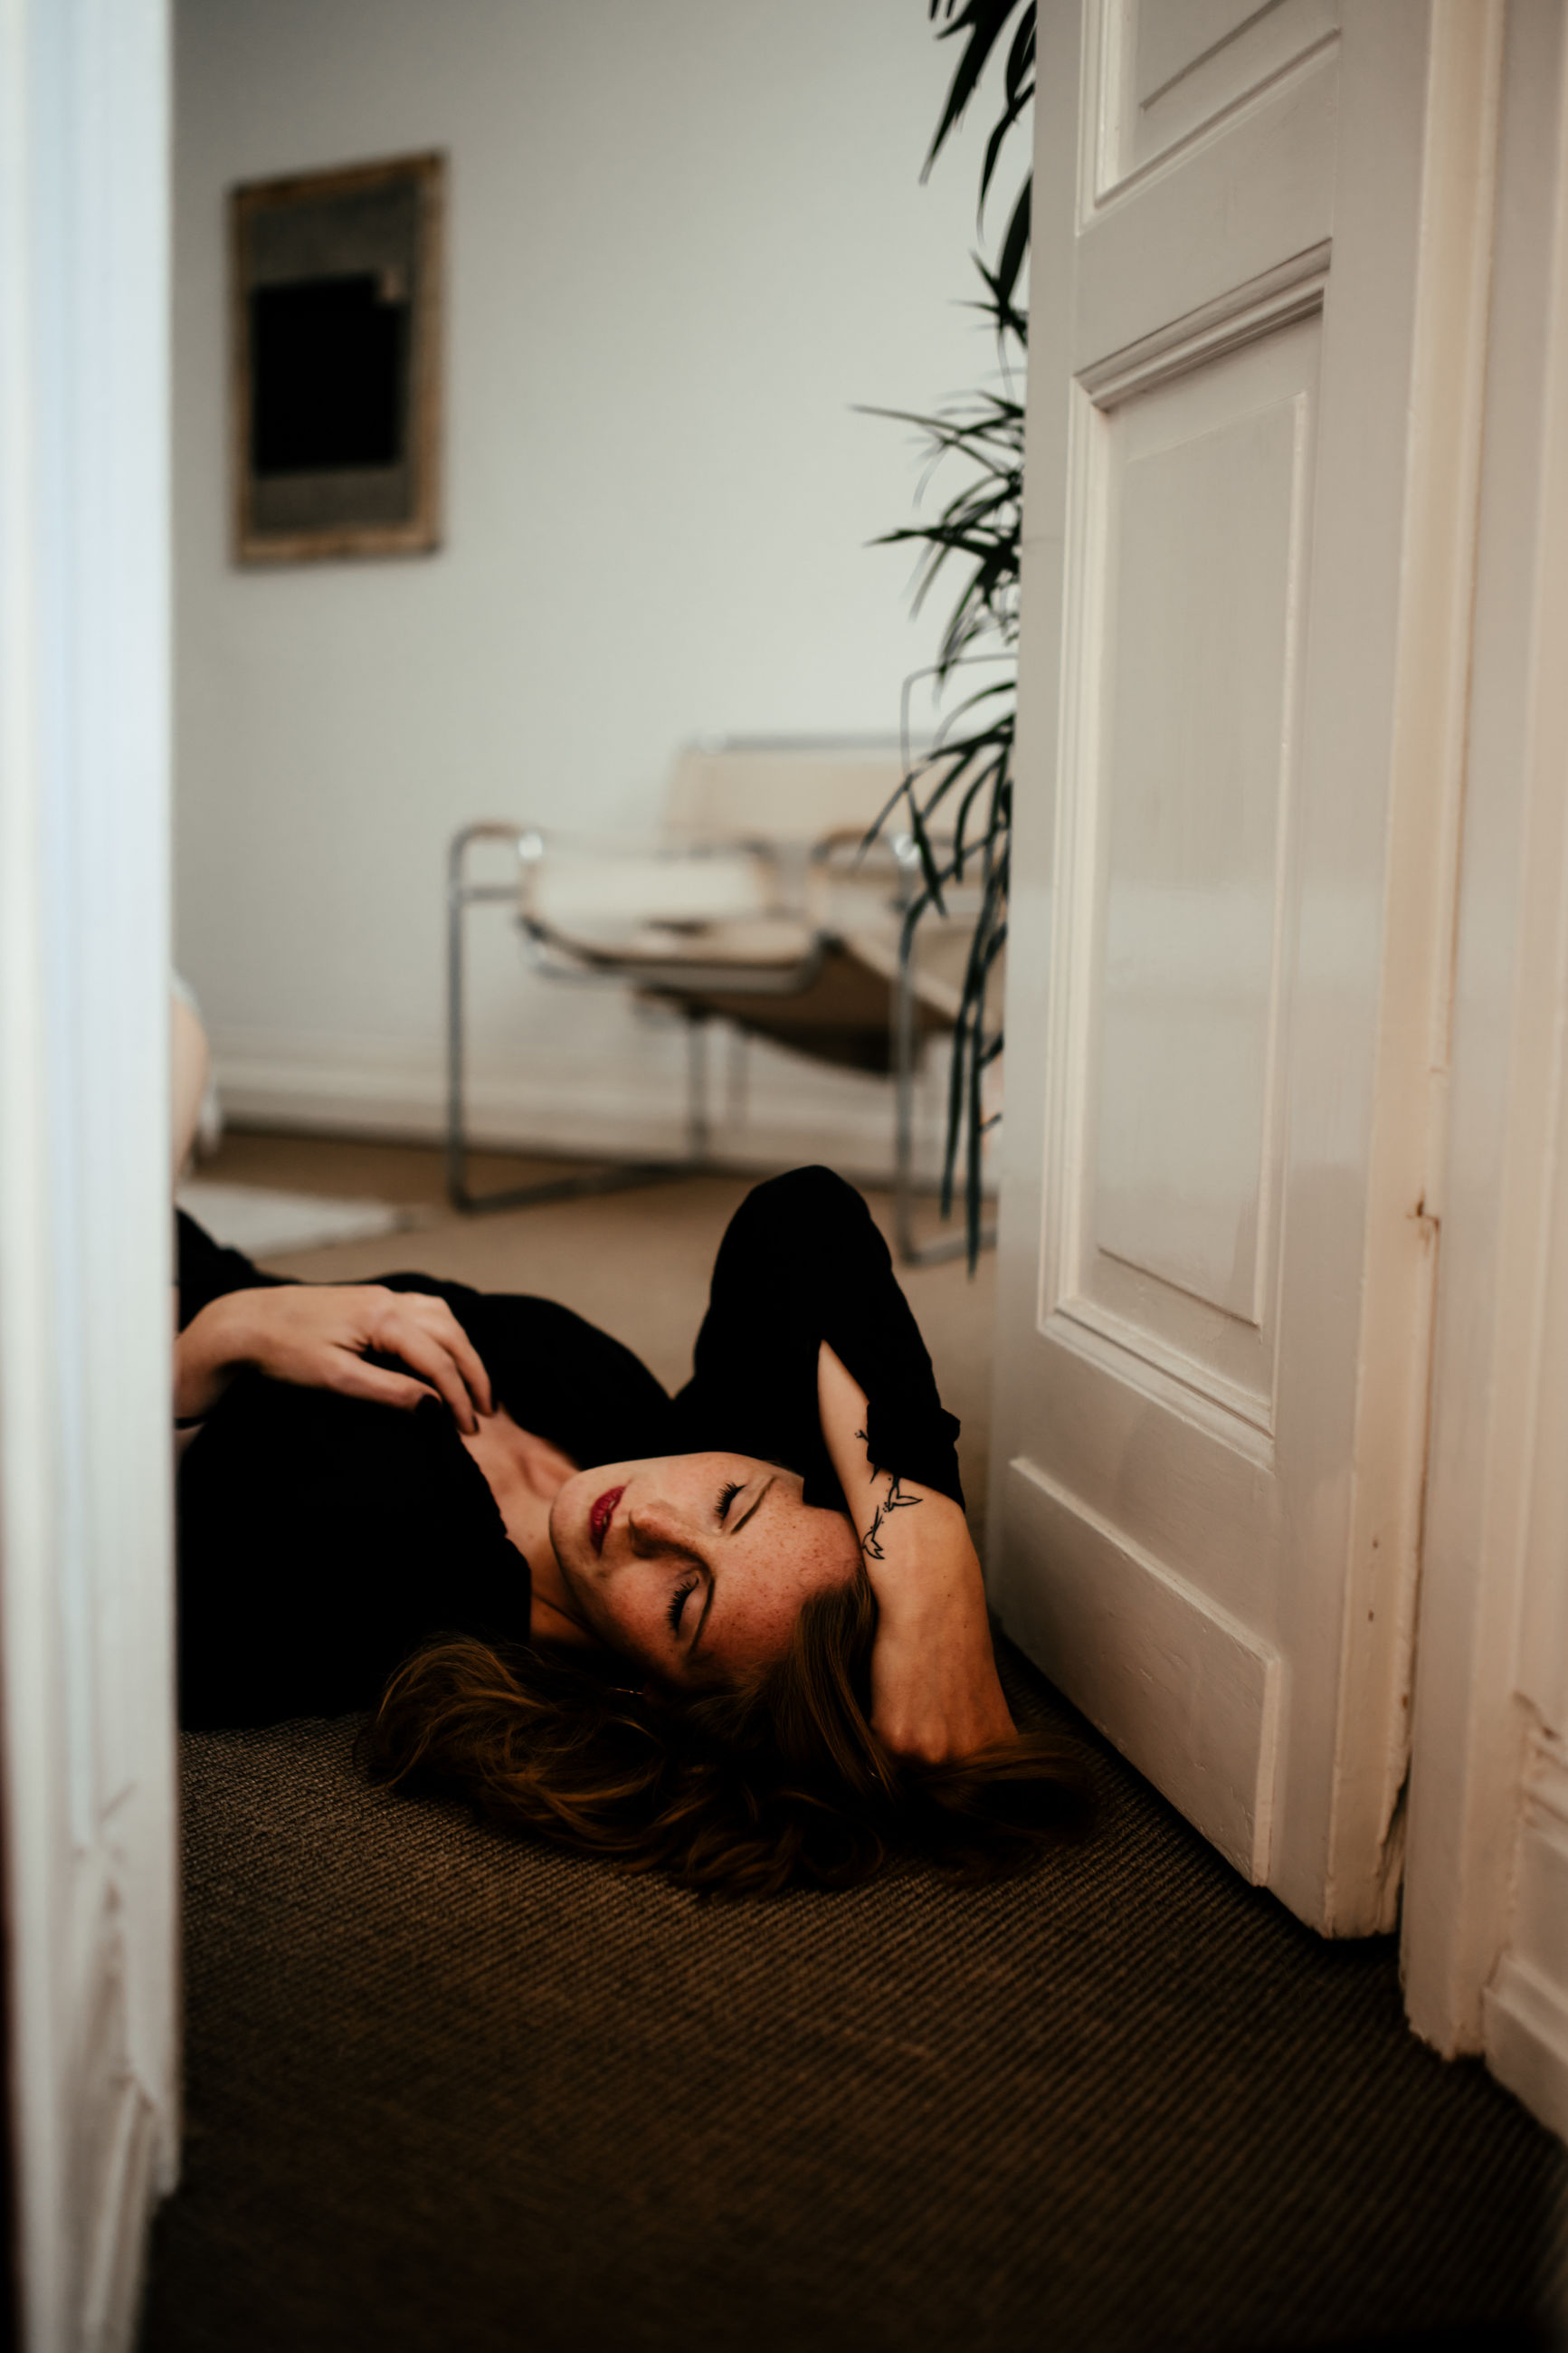 one person, young adult, real people, indoors, door, entrance, lifestyles, home interior, young women, lying down, relaxation, women, leisure activity, portrait, architecture, full length, adult, beautiful woman, hairstyle